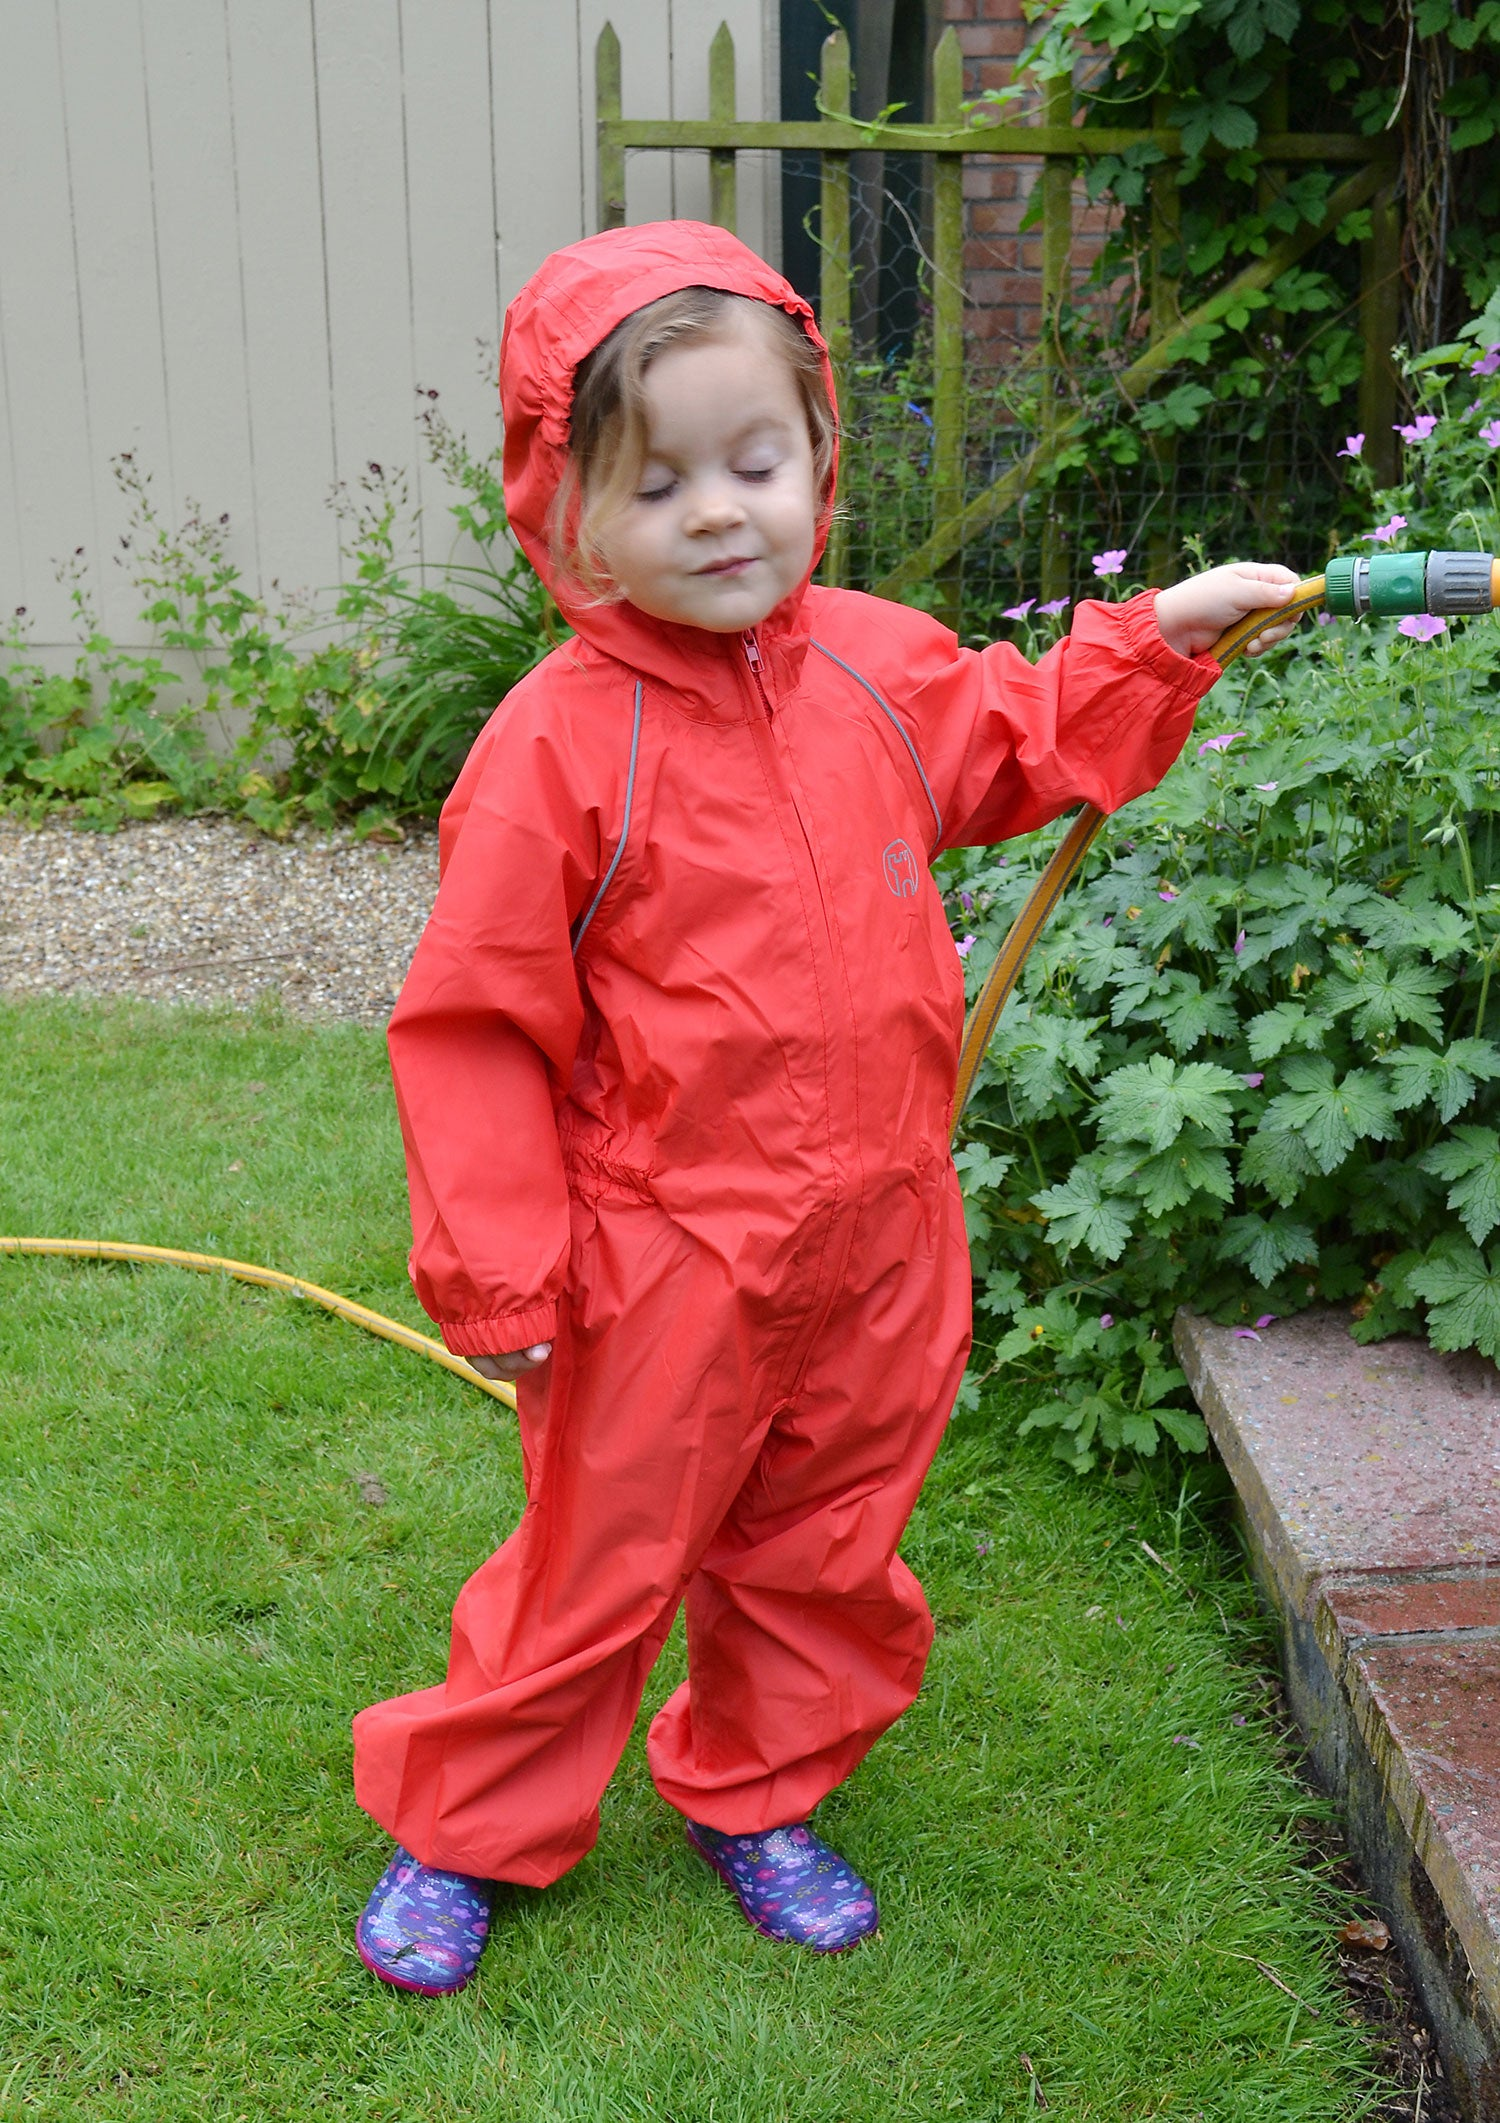 Watering the flowers in Pink Girl in Splashaway Rainsuit